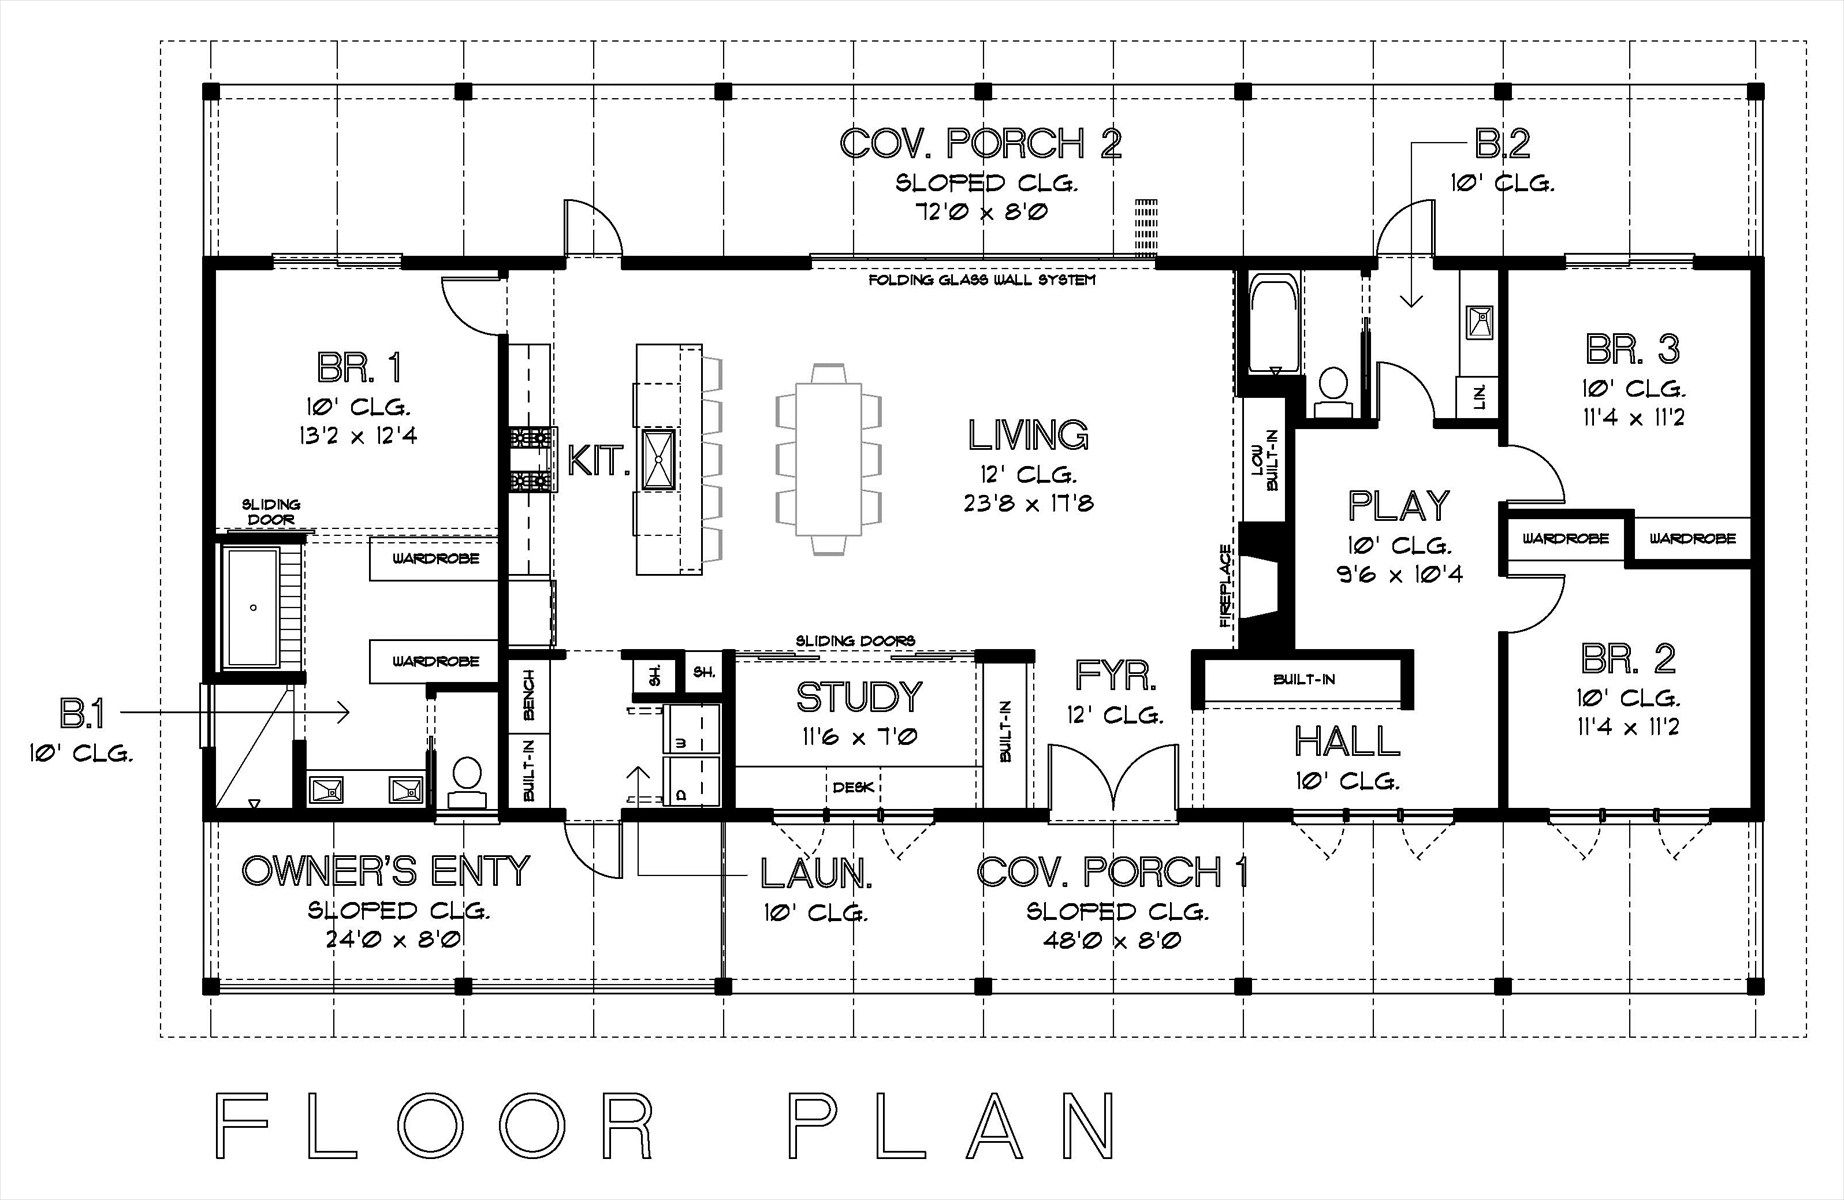 Floorplan For The New Home- 3 Bed/2 Bath/study/playroom 2nd Bedroom